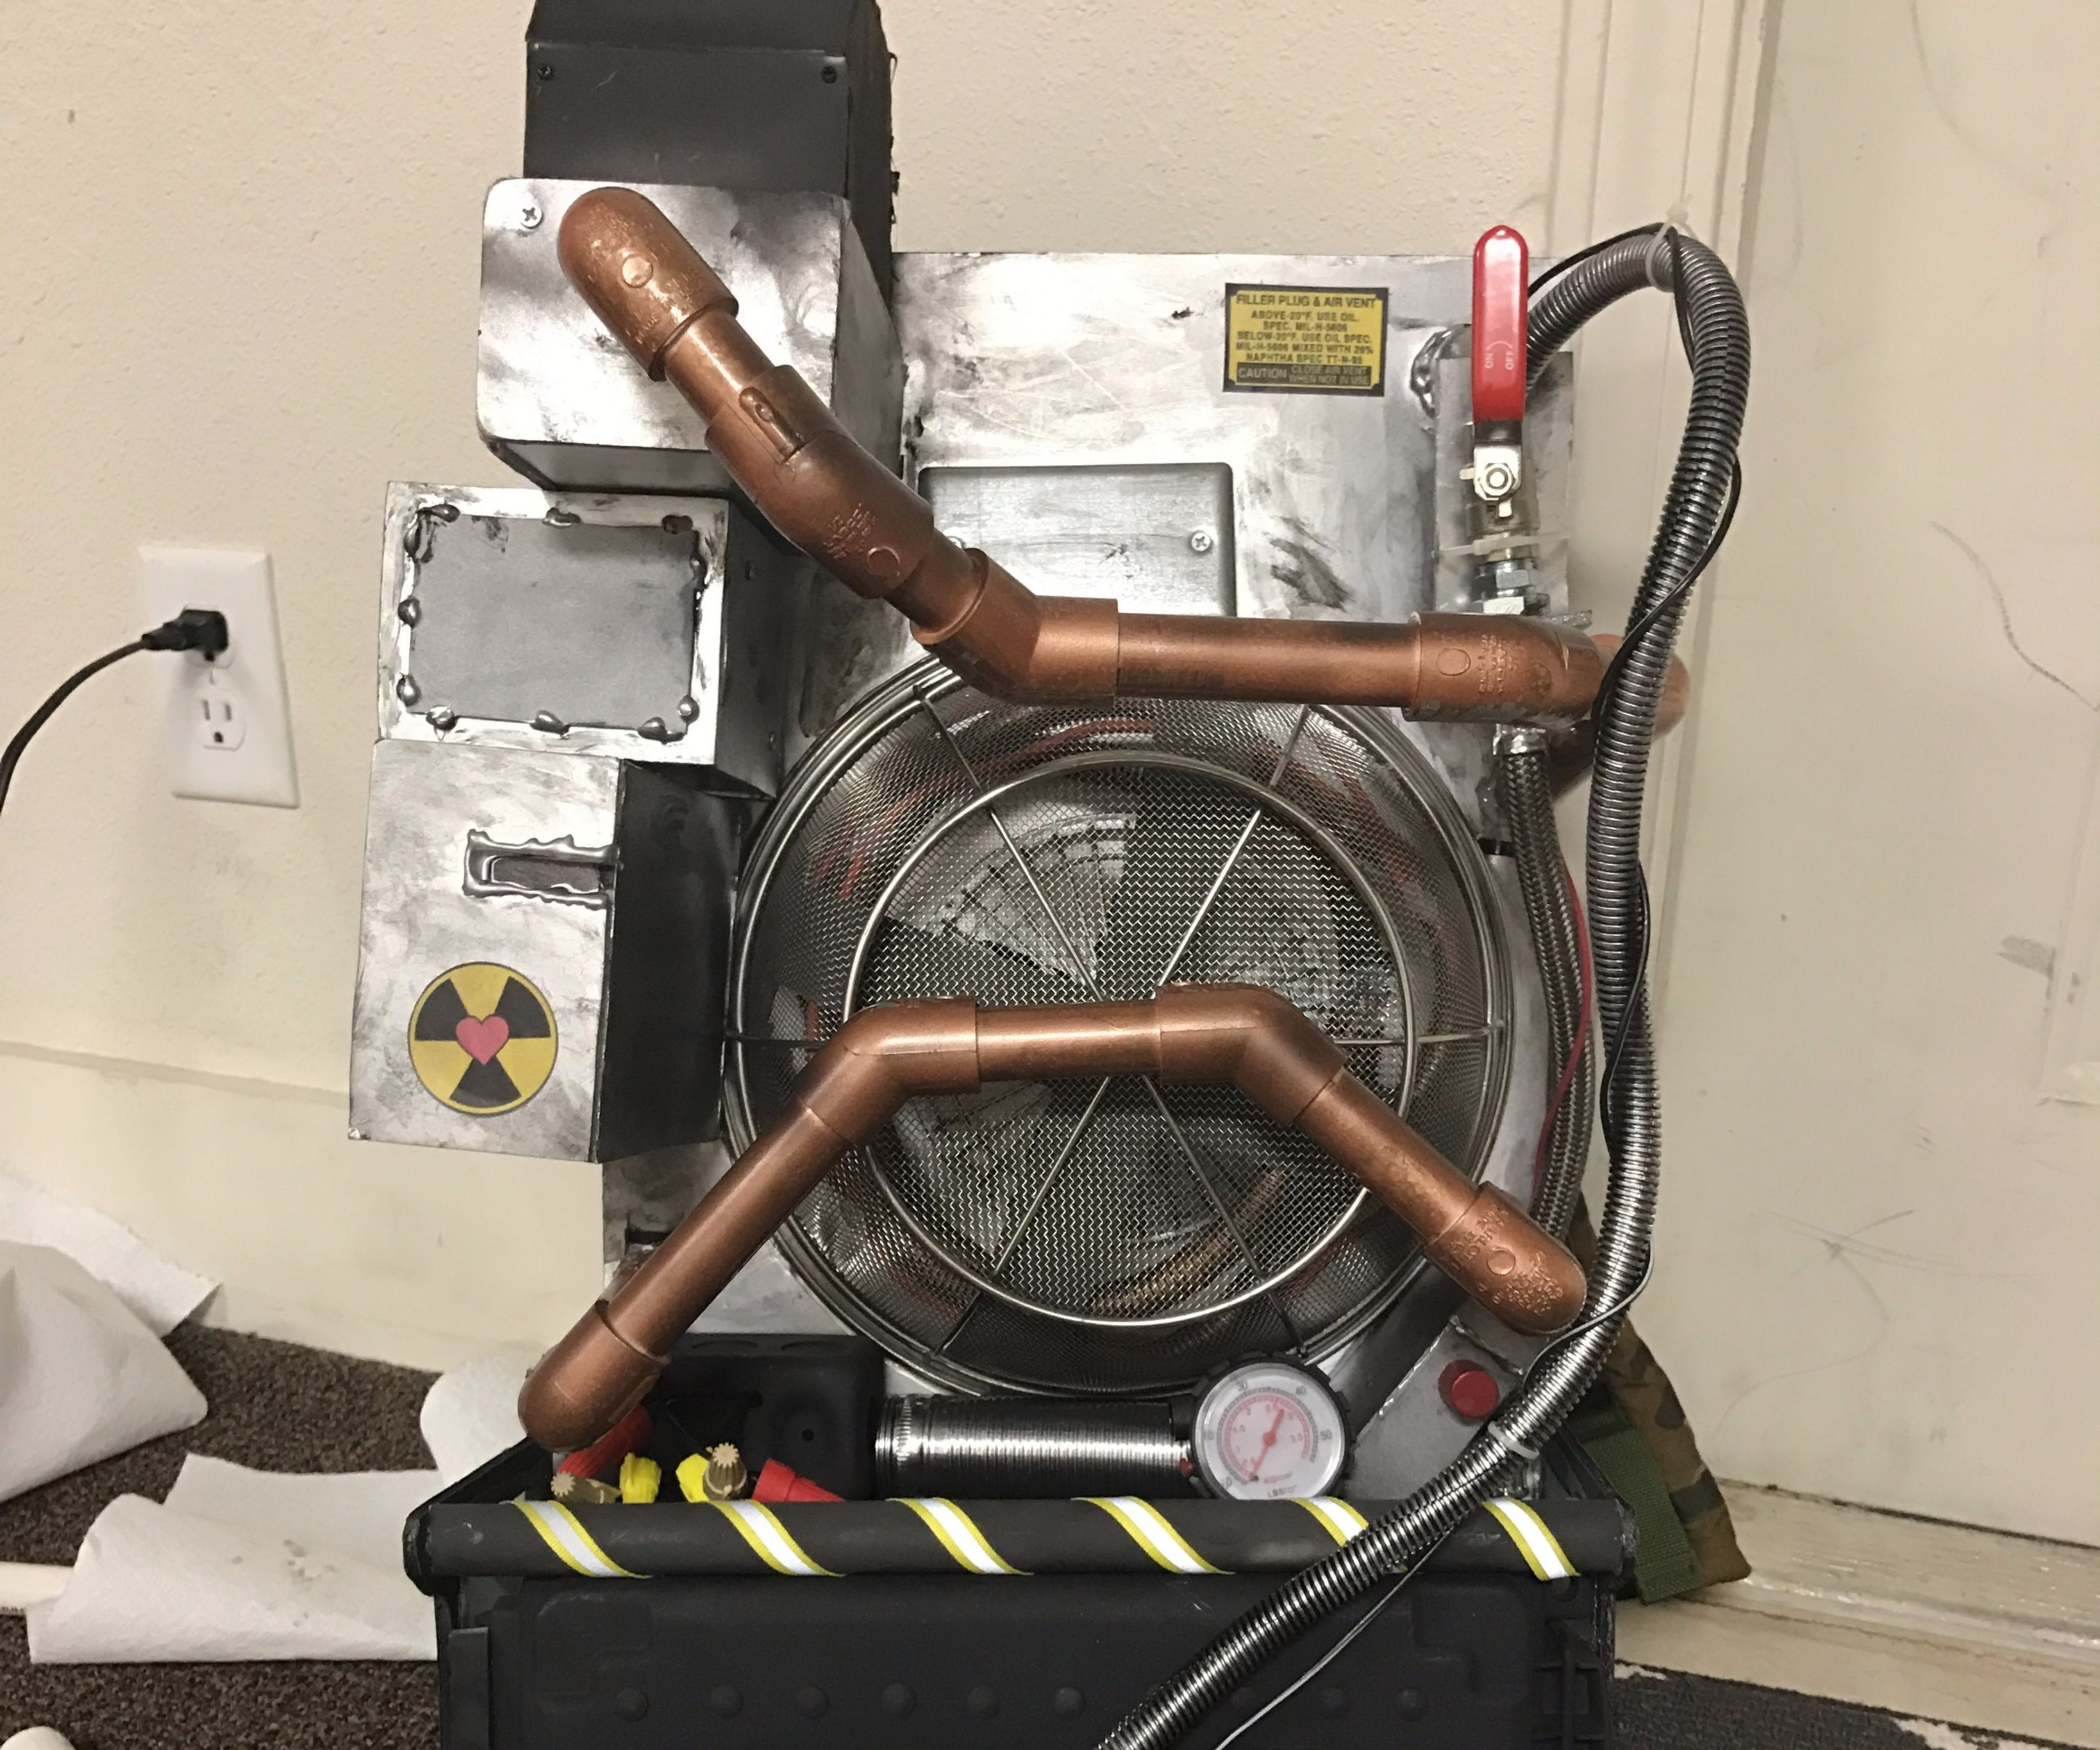 2016 Ghostbusters Proton Pack REBOOT